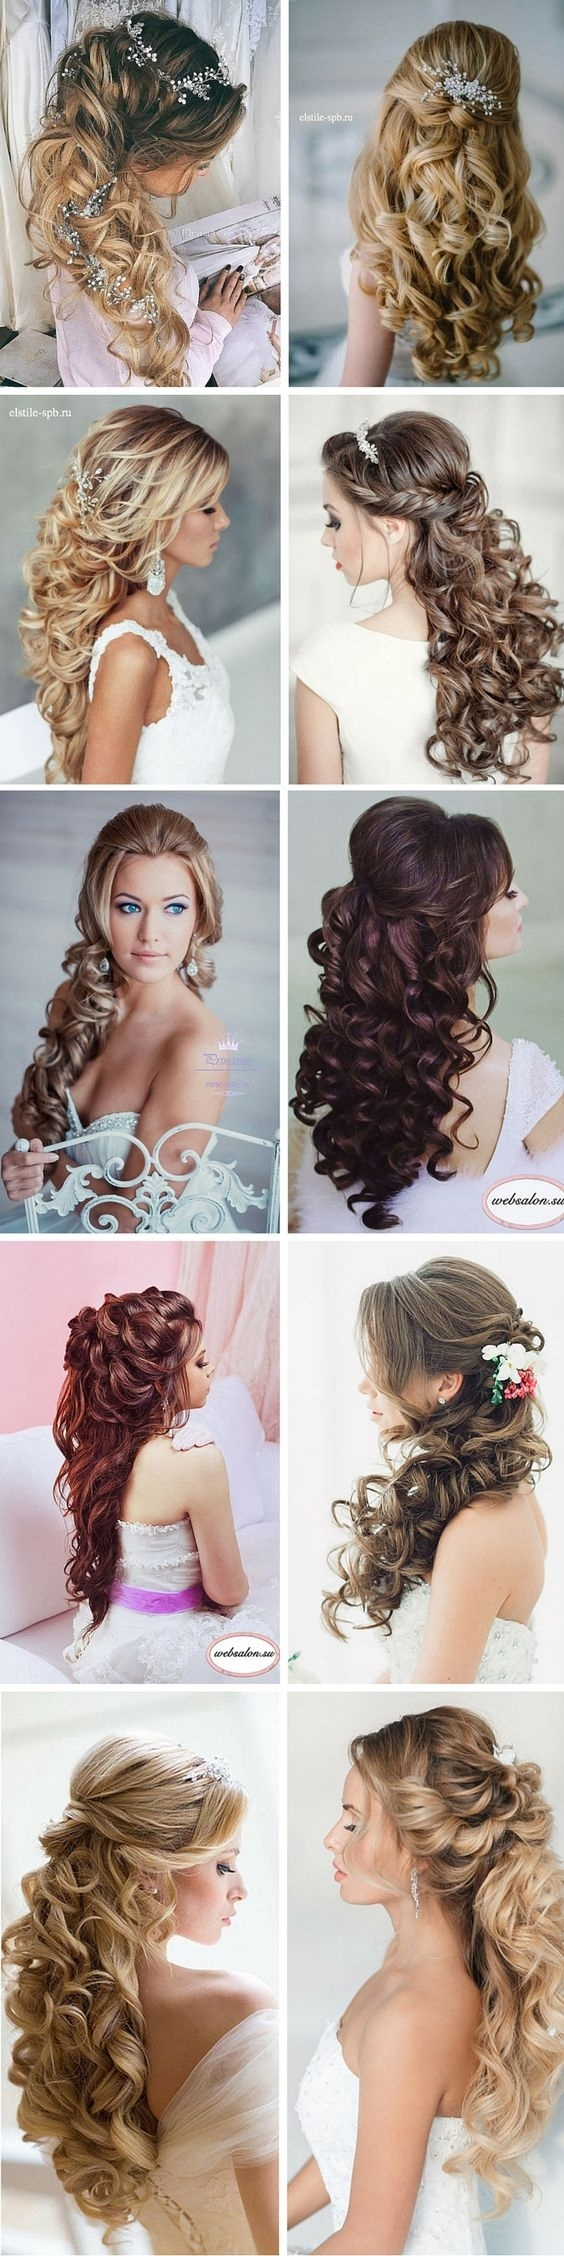 100+ Romantic Long Wedding Hairstyles 2018 – Curls, Half Up, Updos Inside Most Up To Date Wedding Hairstyles For Long Down Curls Hair (View 5 of 15)